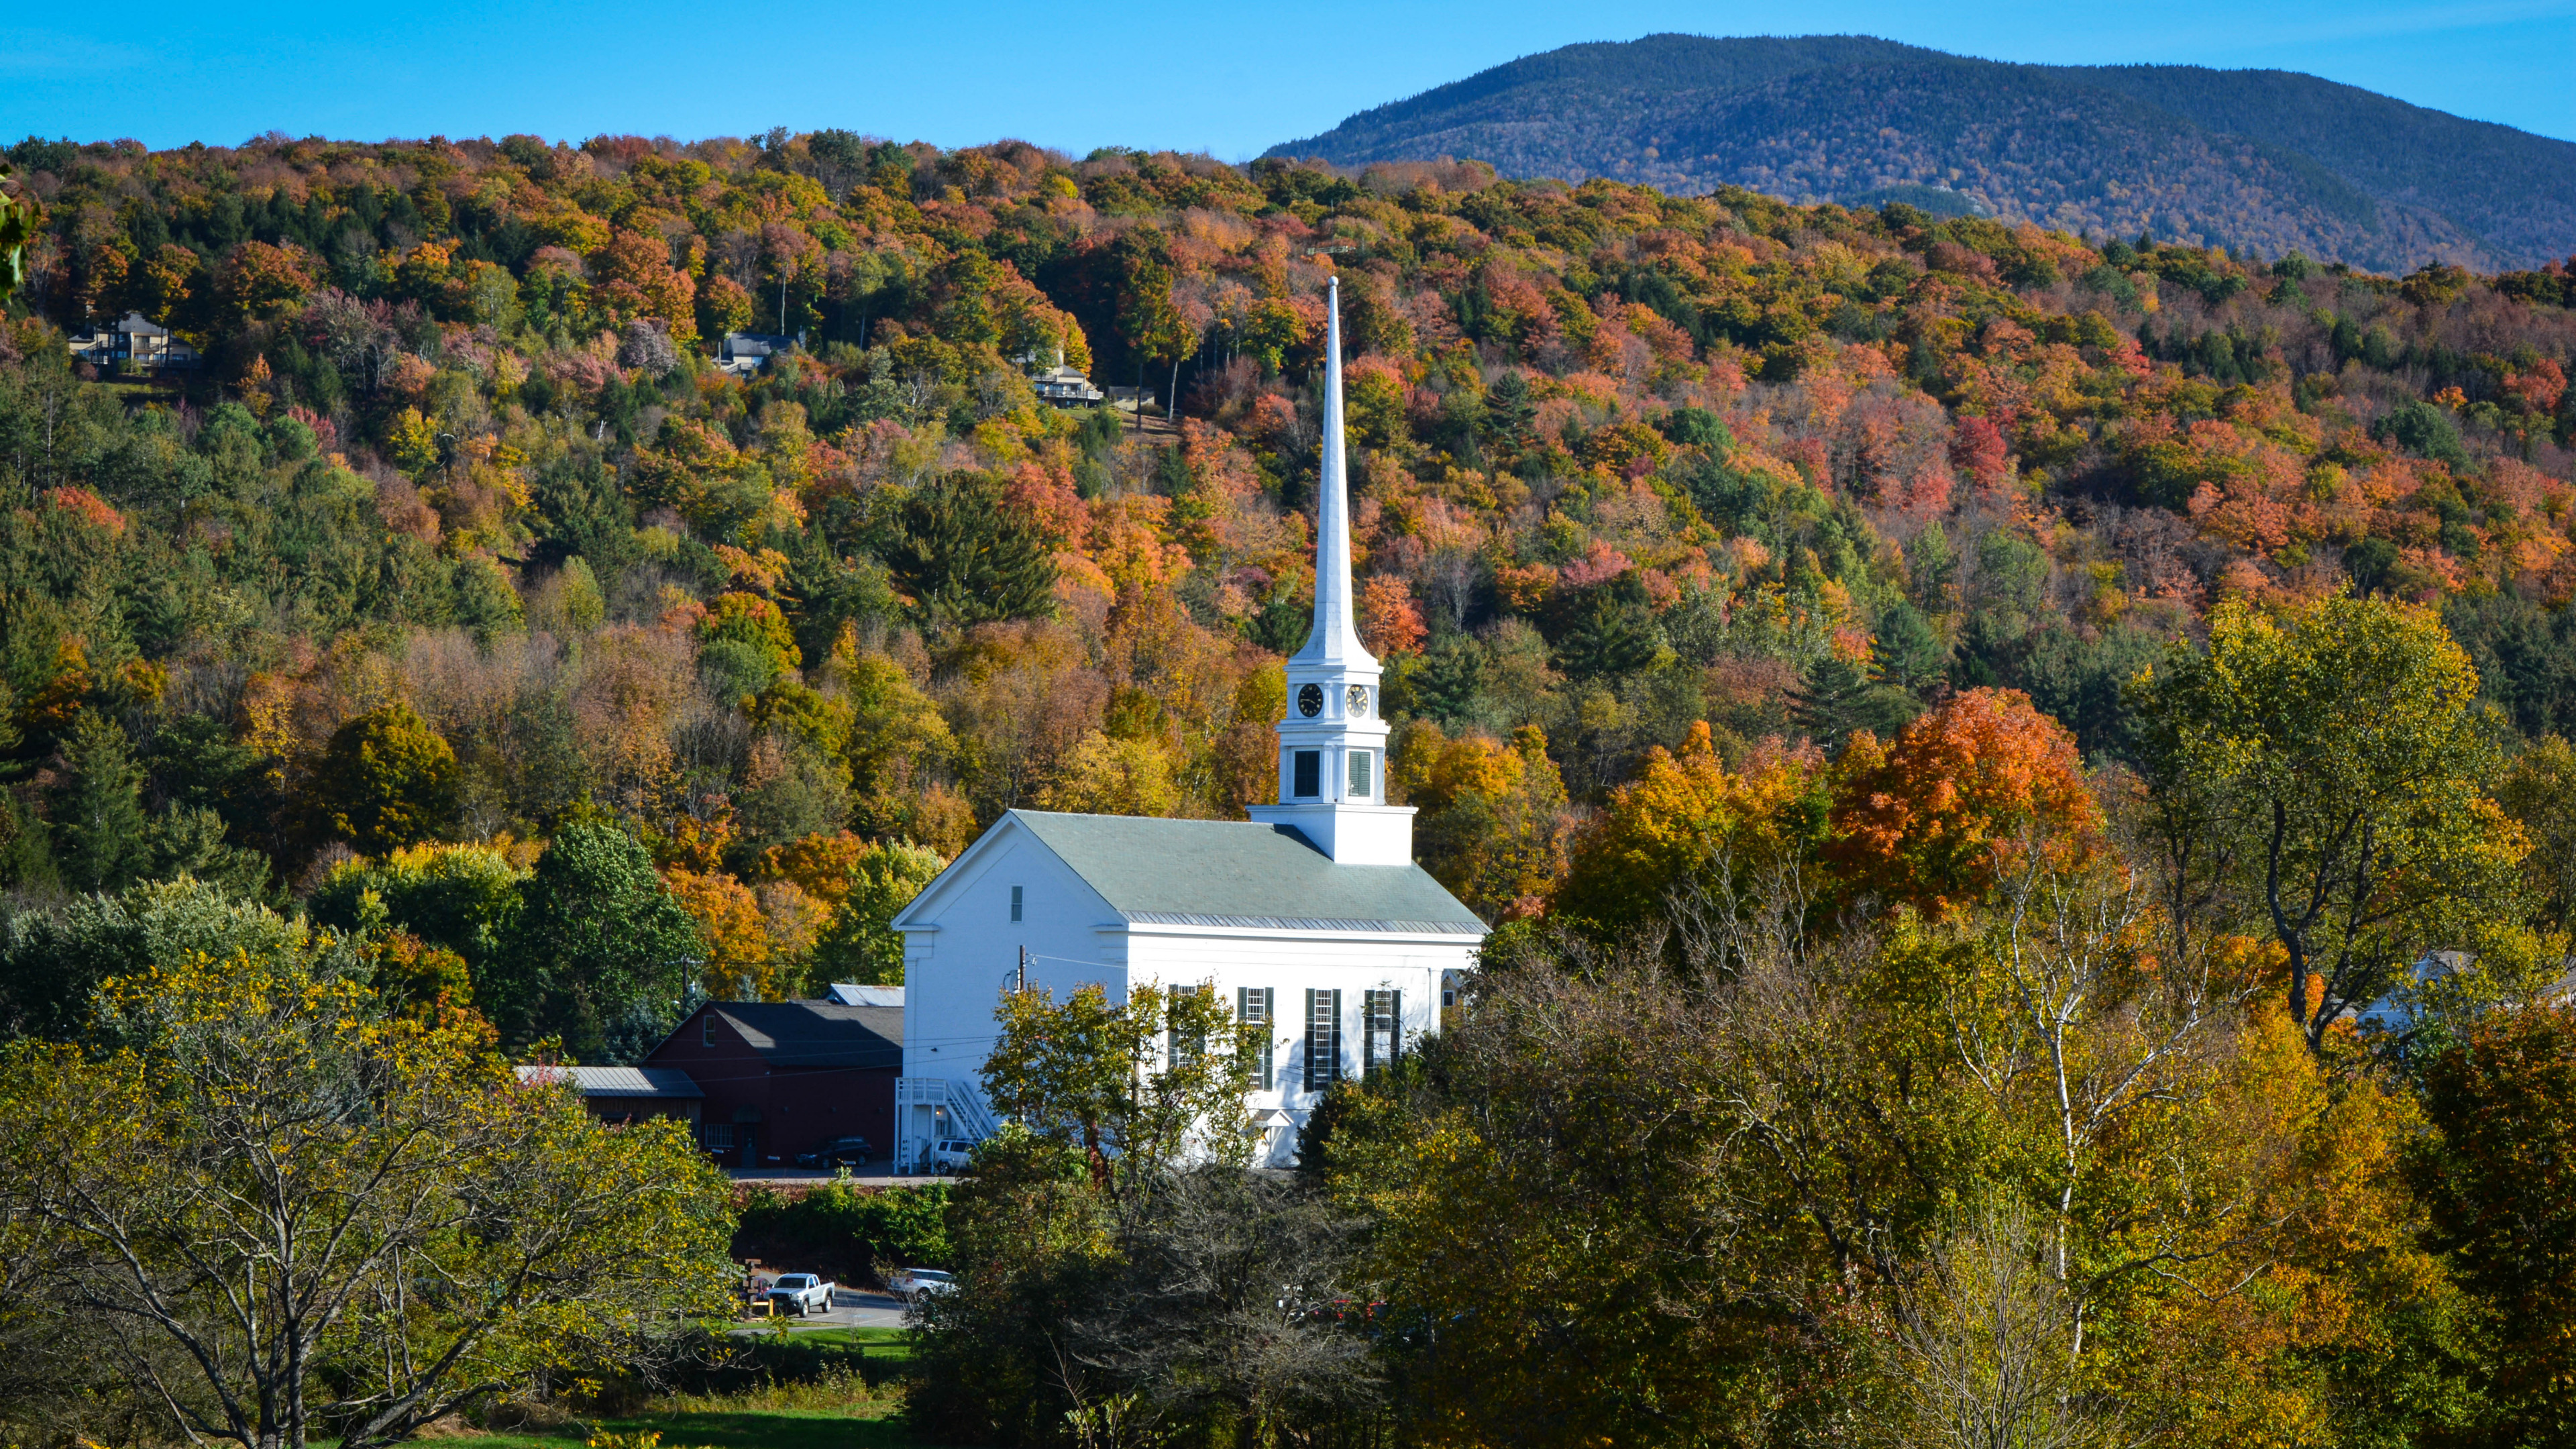 Autumn In New England Wallpaper 3840x2160 Download Hd Wallpaper Wallpapertip